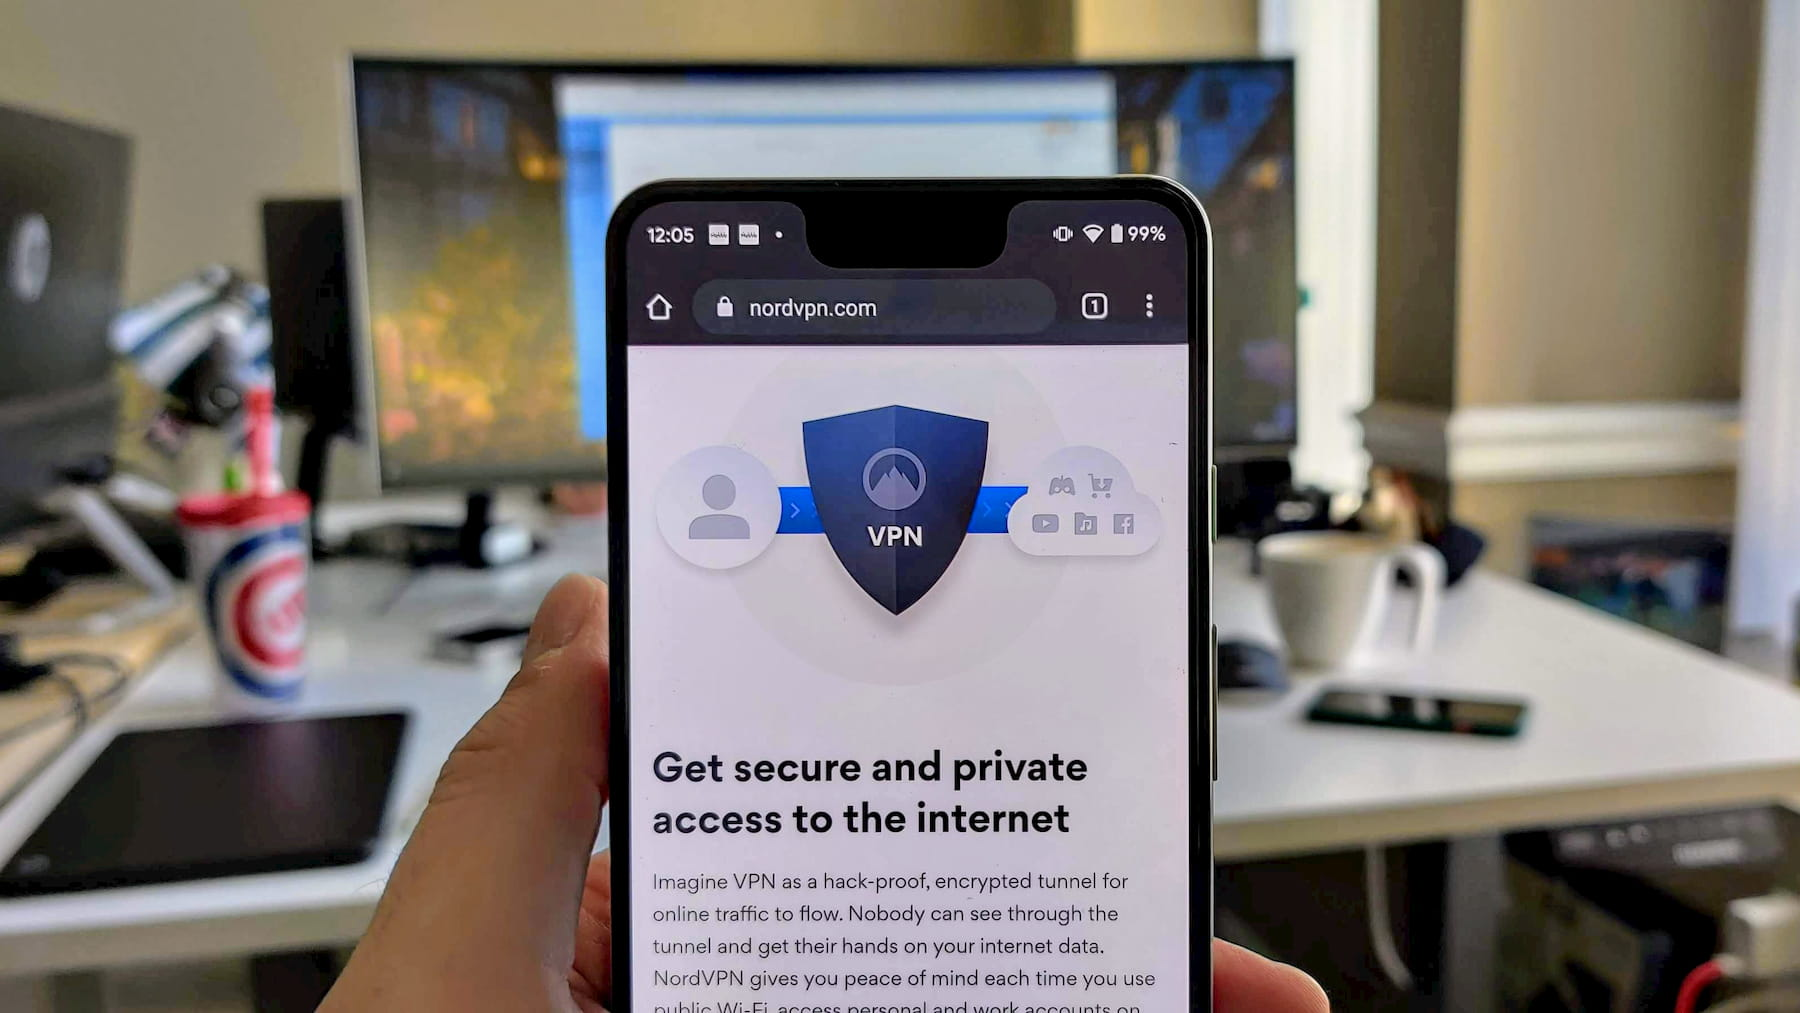 Yes, NordVPN was hacked; no, your data and privacy were not compromised